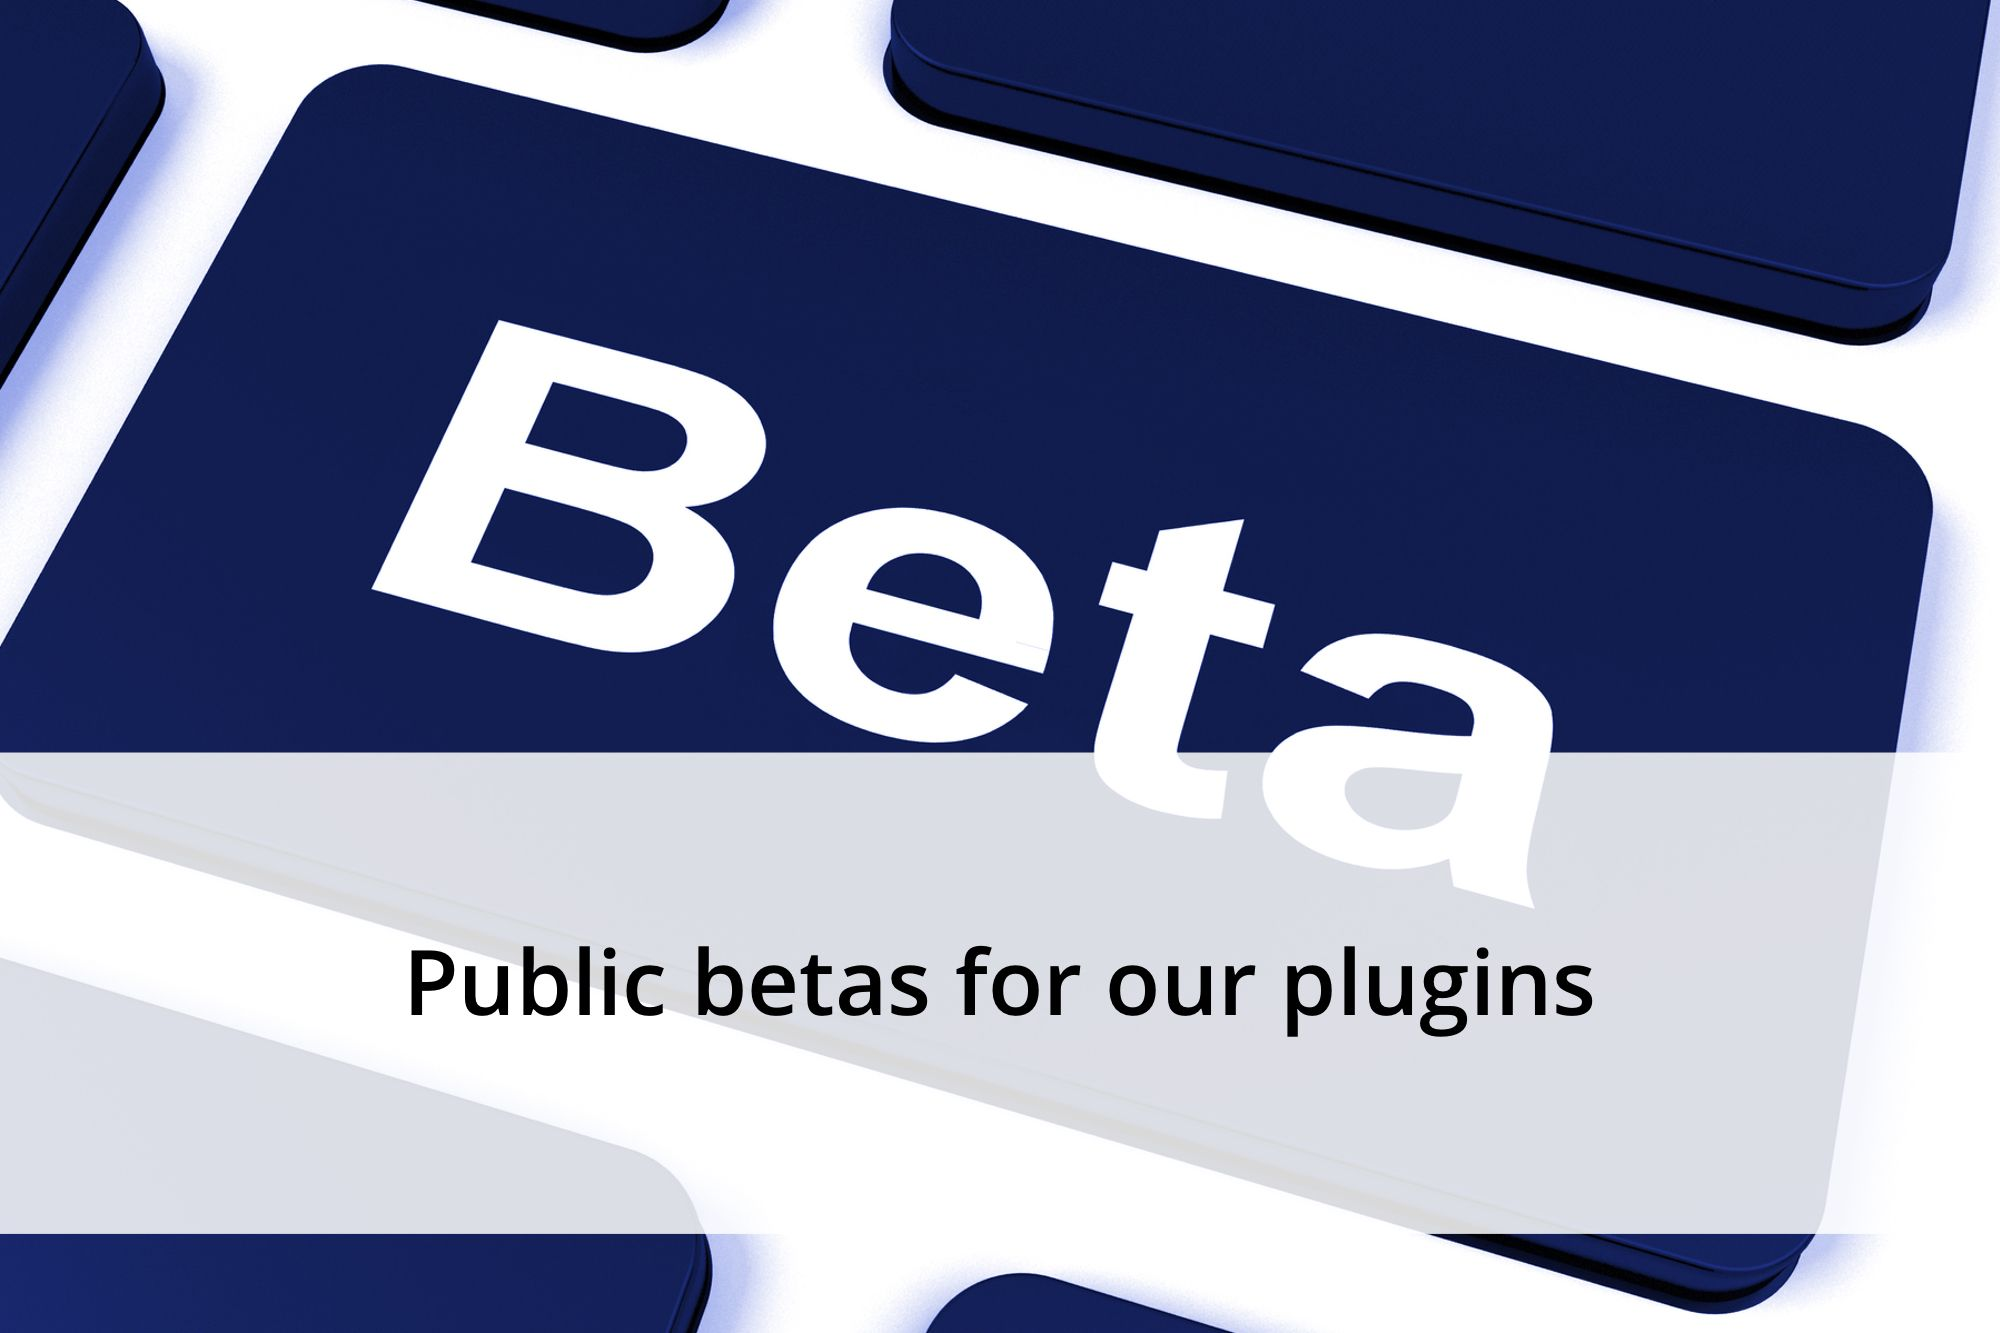 Over the last few months we've been working hard on improving how we build and test our plugins. We're writing more and more unit tests and are trying to prevent issues from popping up. There's one recurring issue though: we can't test everything. Hosting environments vary so much that we have decided to do more public…  https://yoast.com/public-betas-plugins/